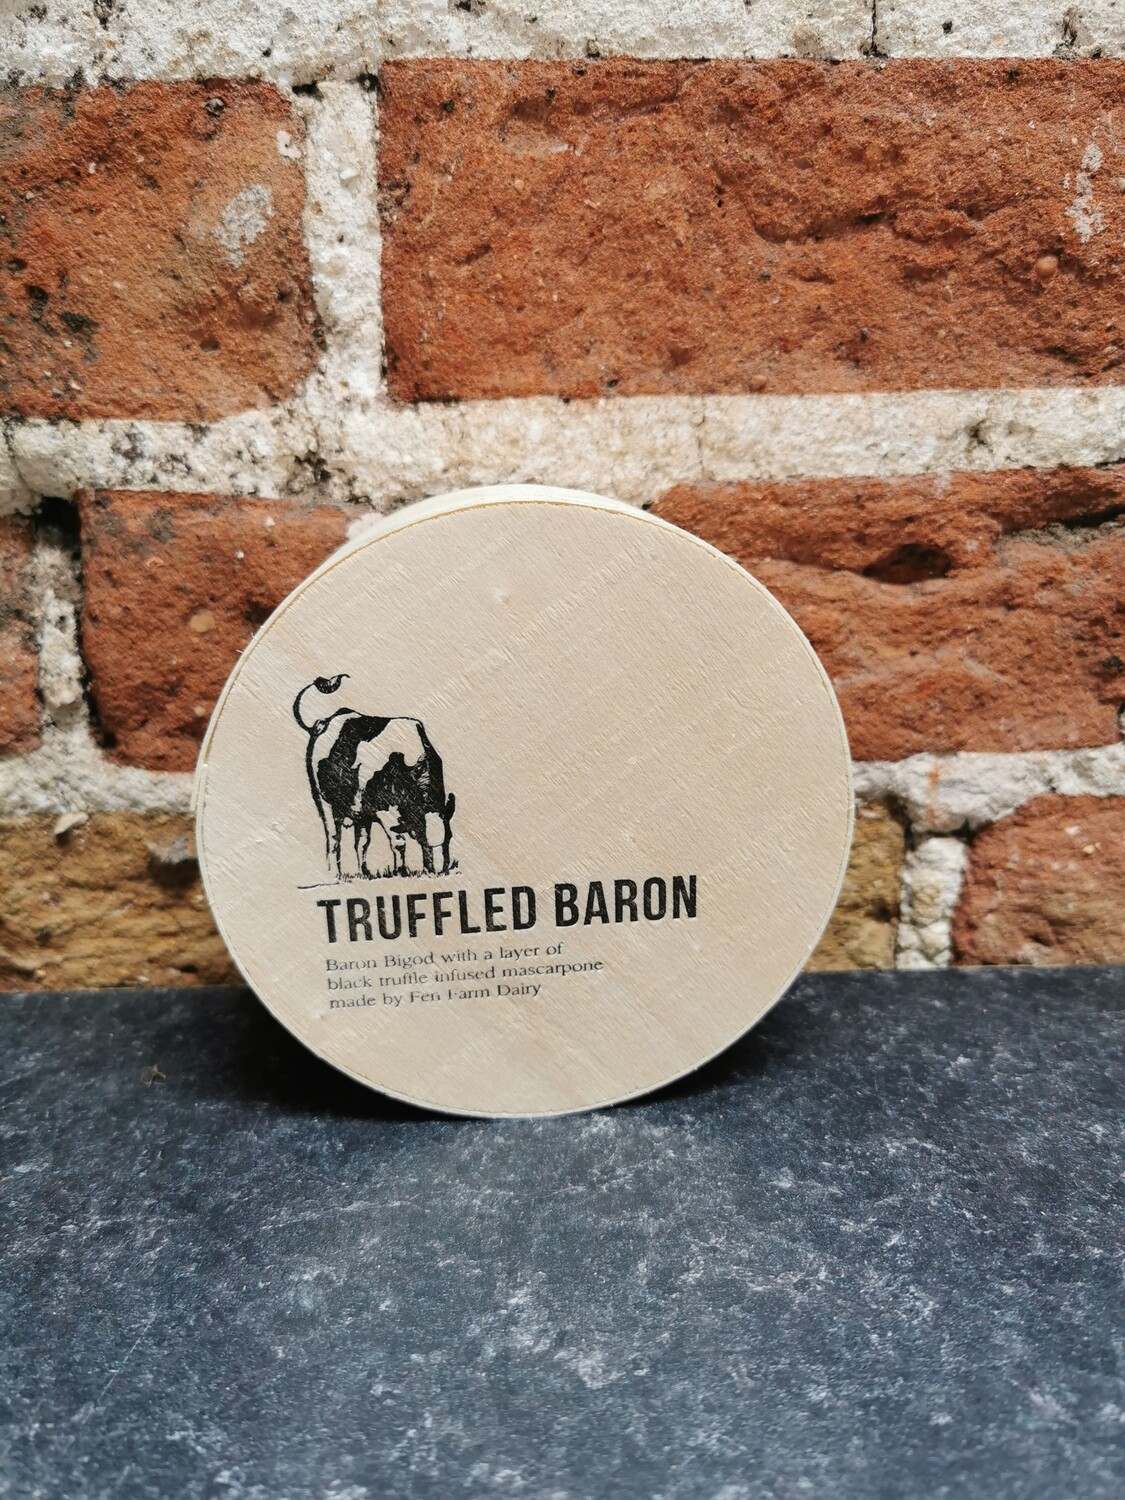 Truffled Baron